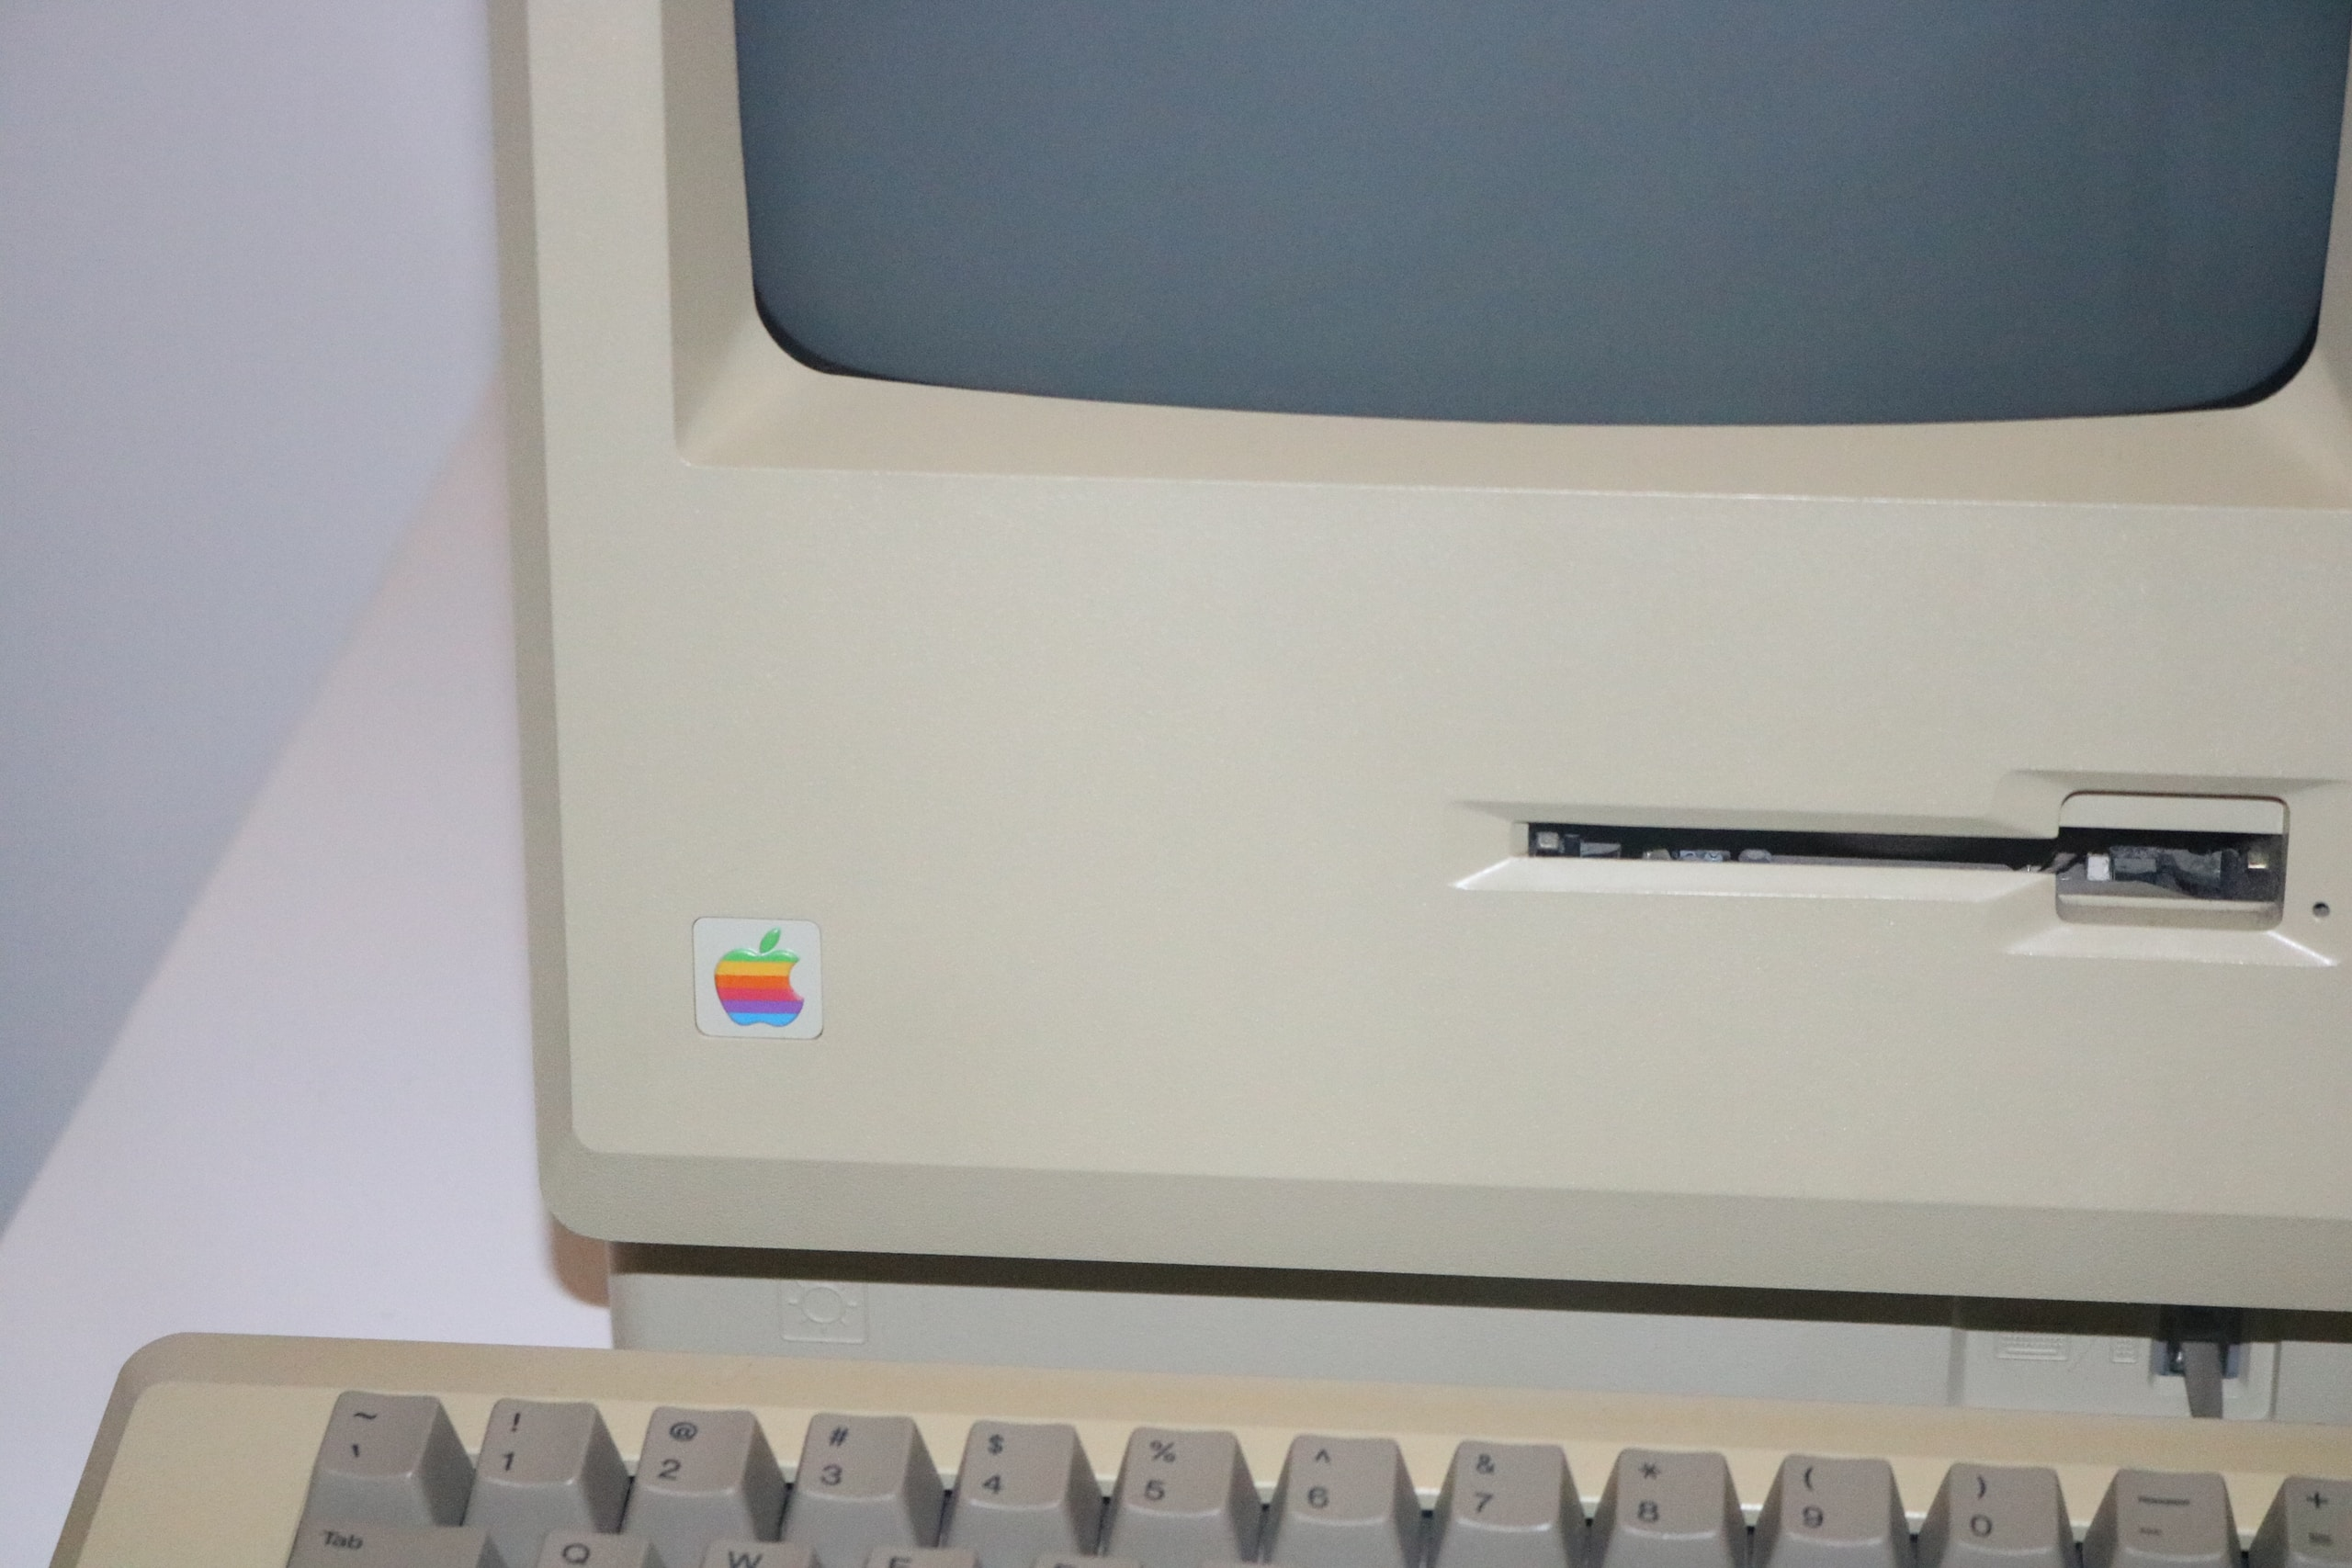 turned off Macintosh